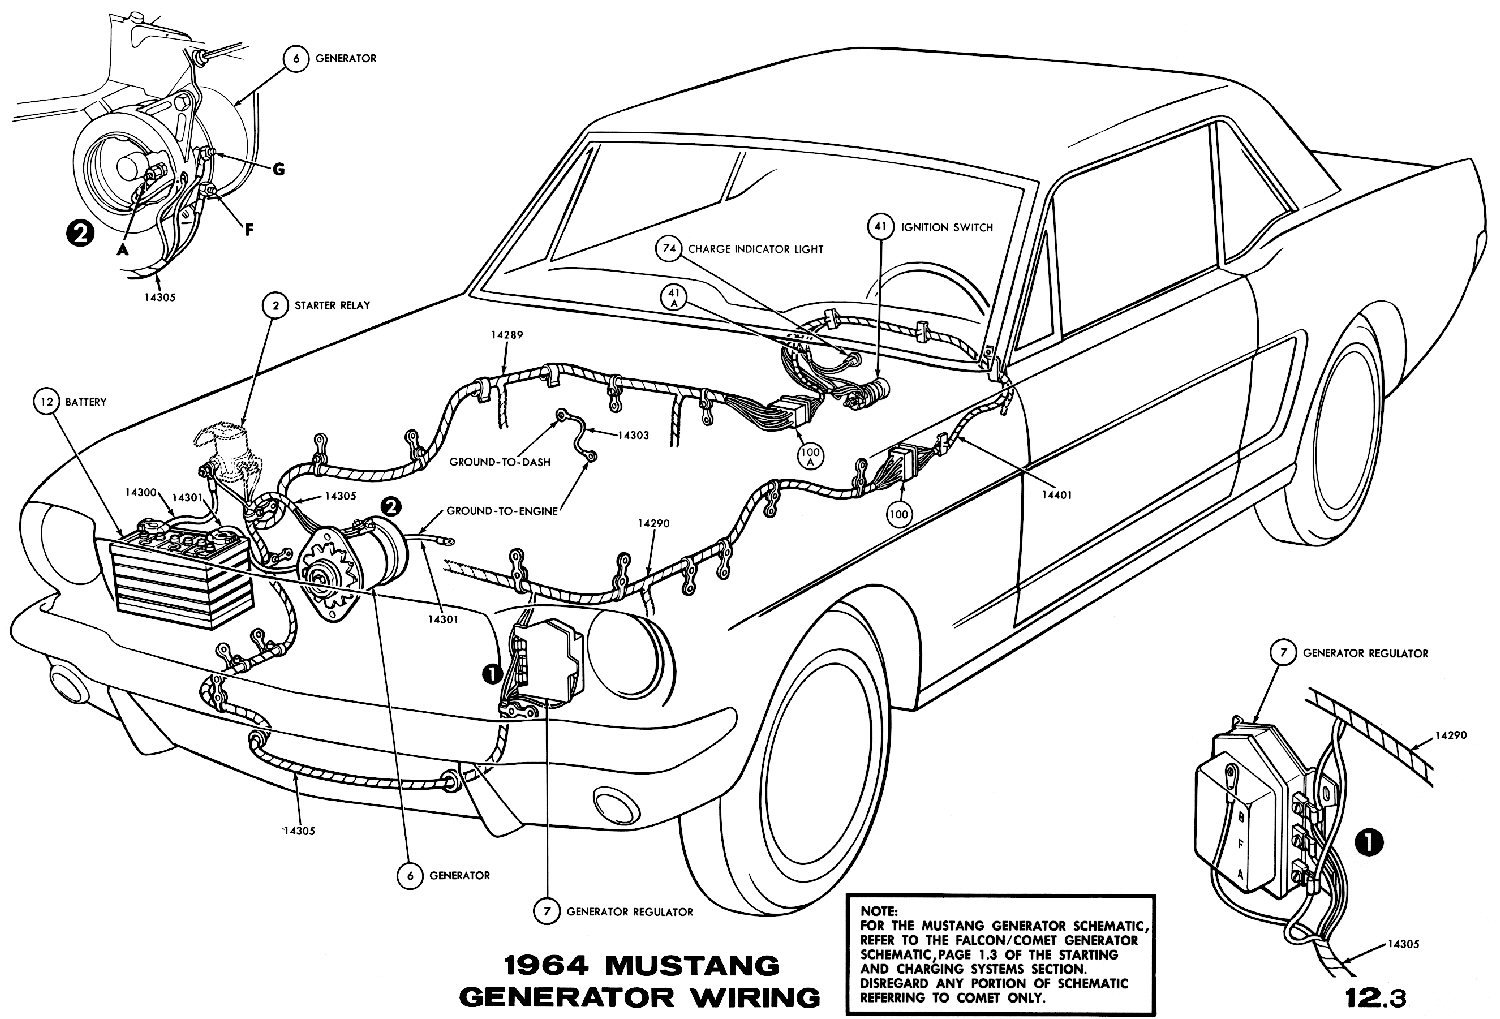 1964f 1966 mustang wiring diagram 1966 mustang ignition wiring diagram 1969 ford mustang wiring diagram at mr168.co